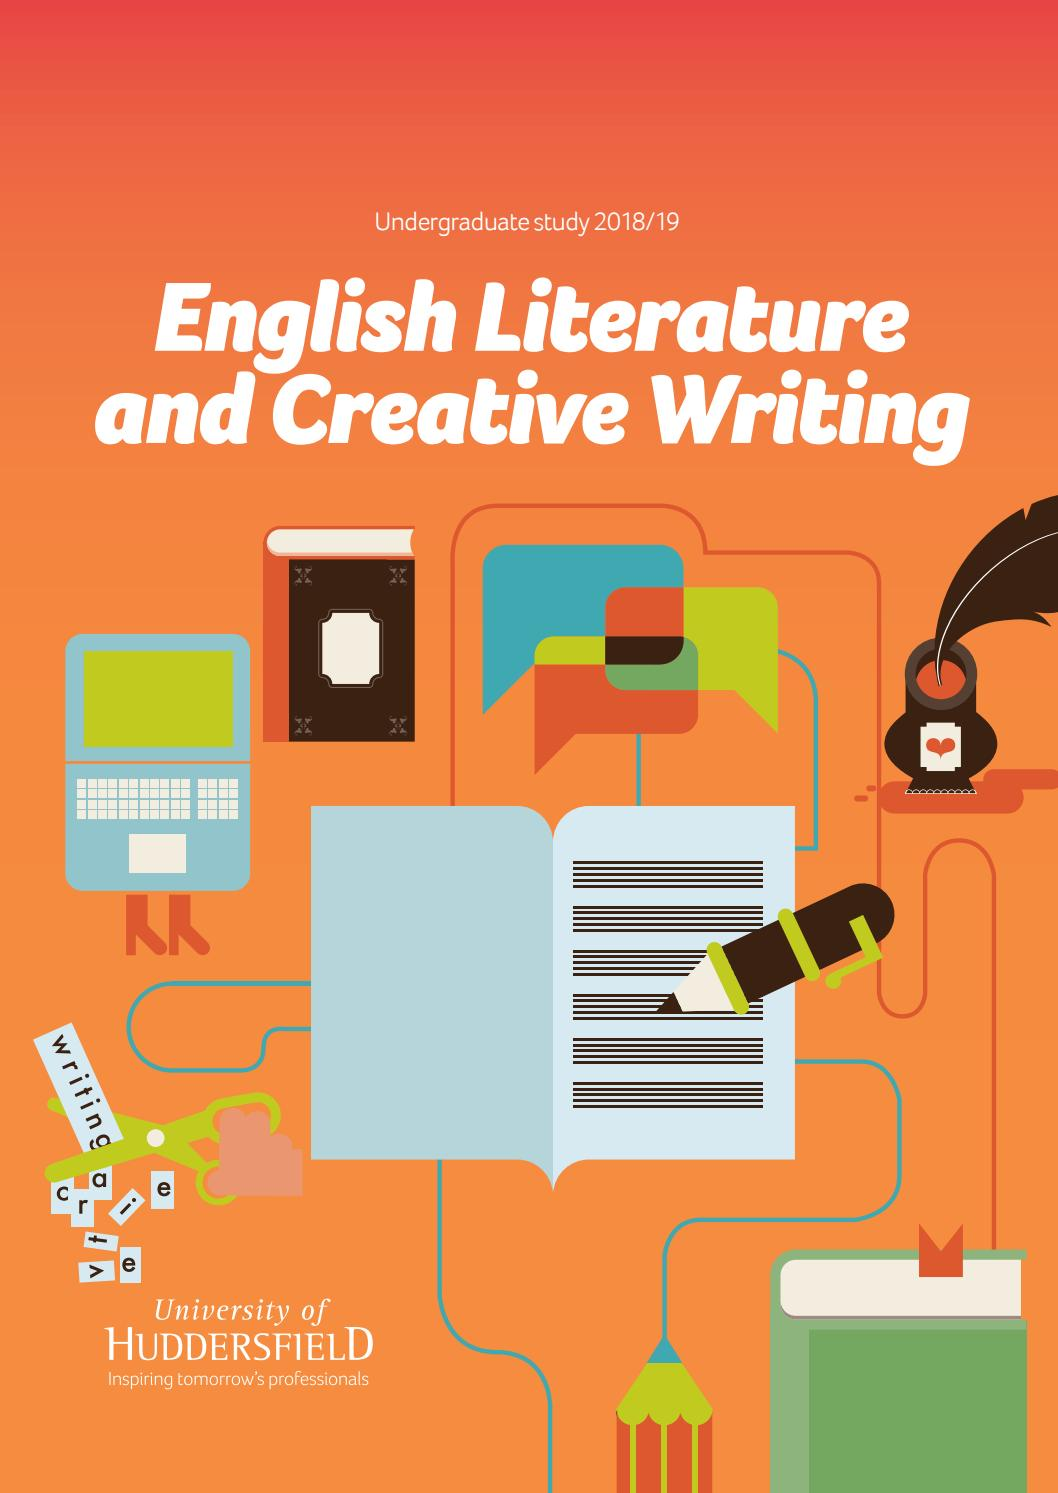 english literature and creative writing degrees